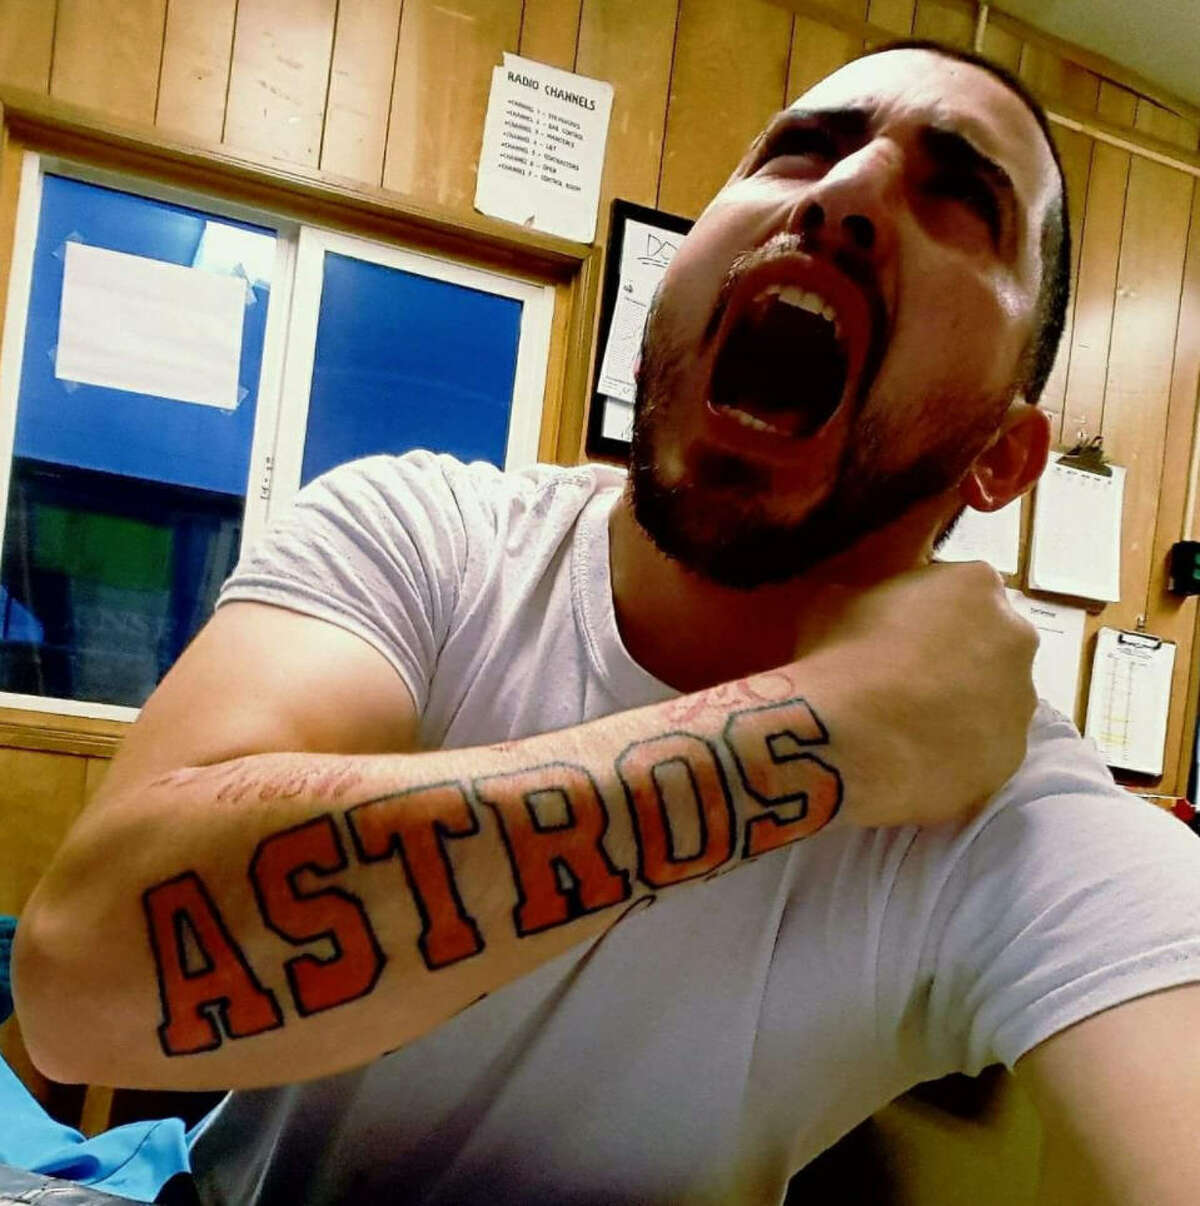 Following the Astros' first-ever World Series Championship win, fans commemorated the win with honorary tattoos.